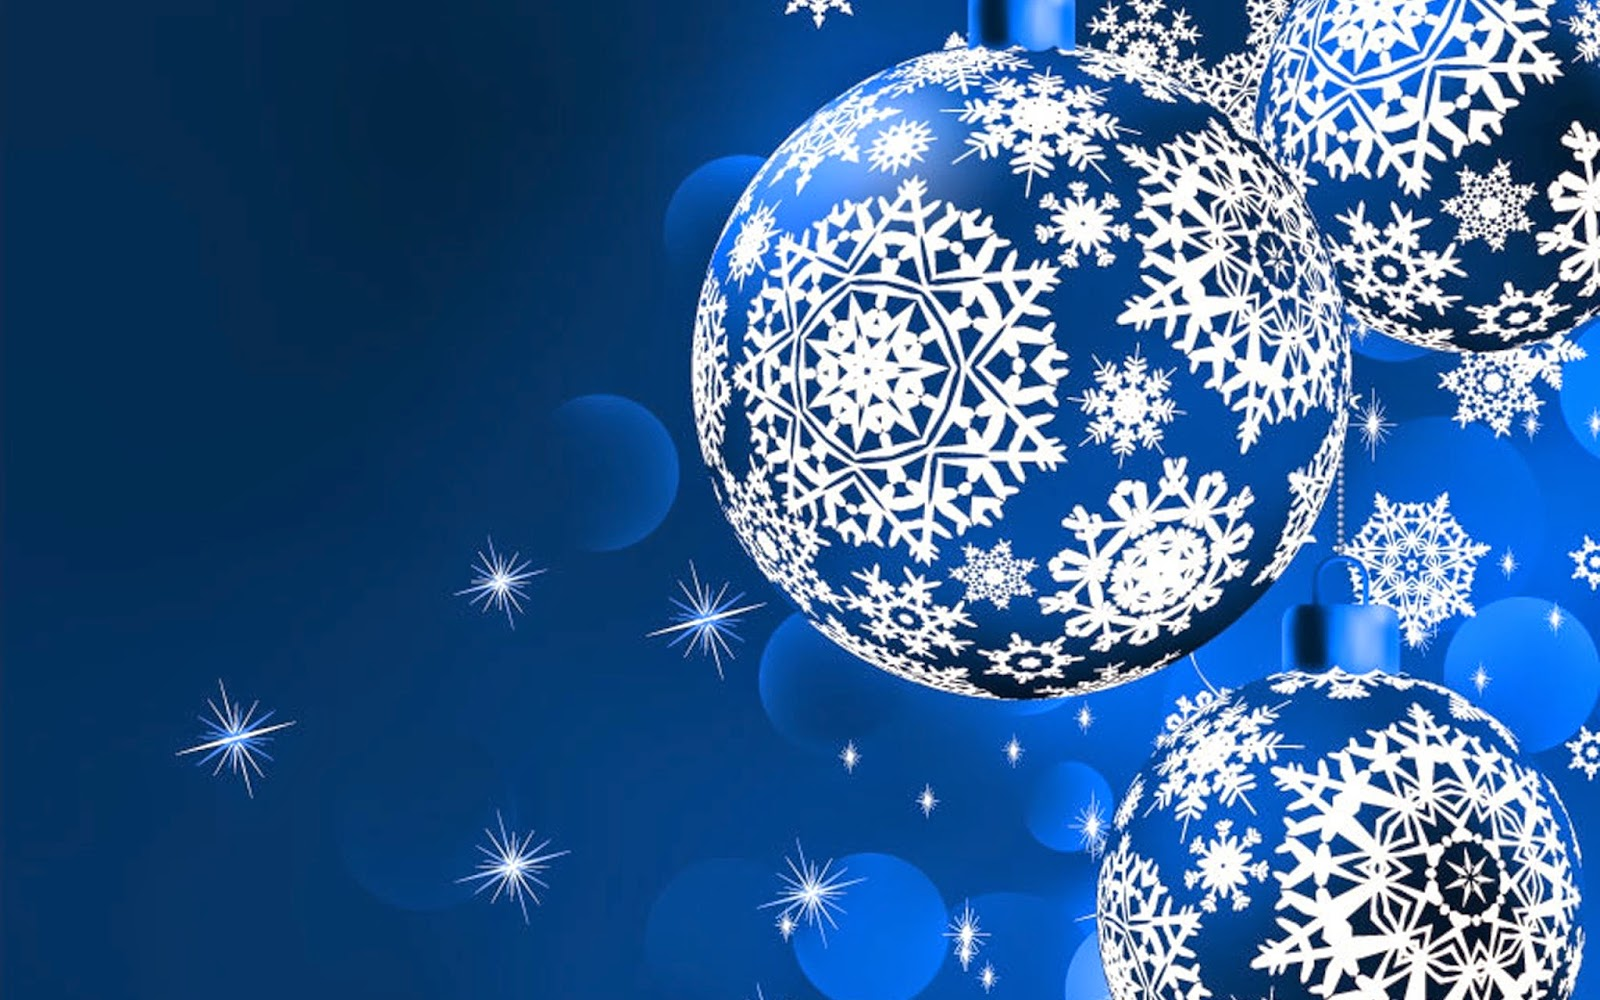 Christmas-bauble-abstract-vector-graphics-image-Blue-background-silver-designs-wallpaper.jpg